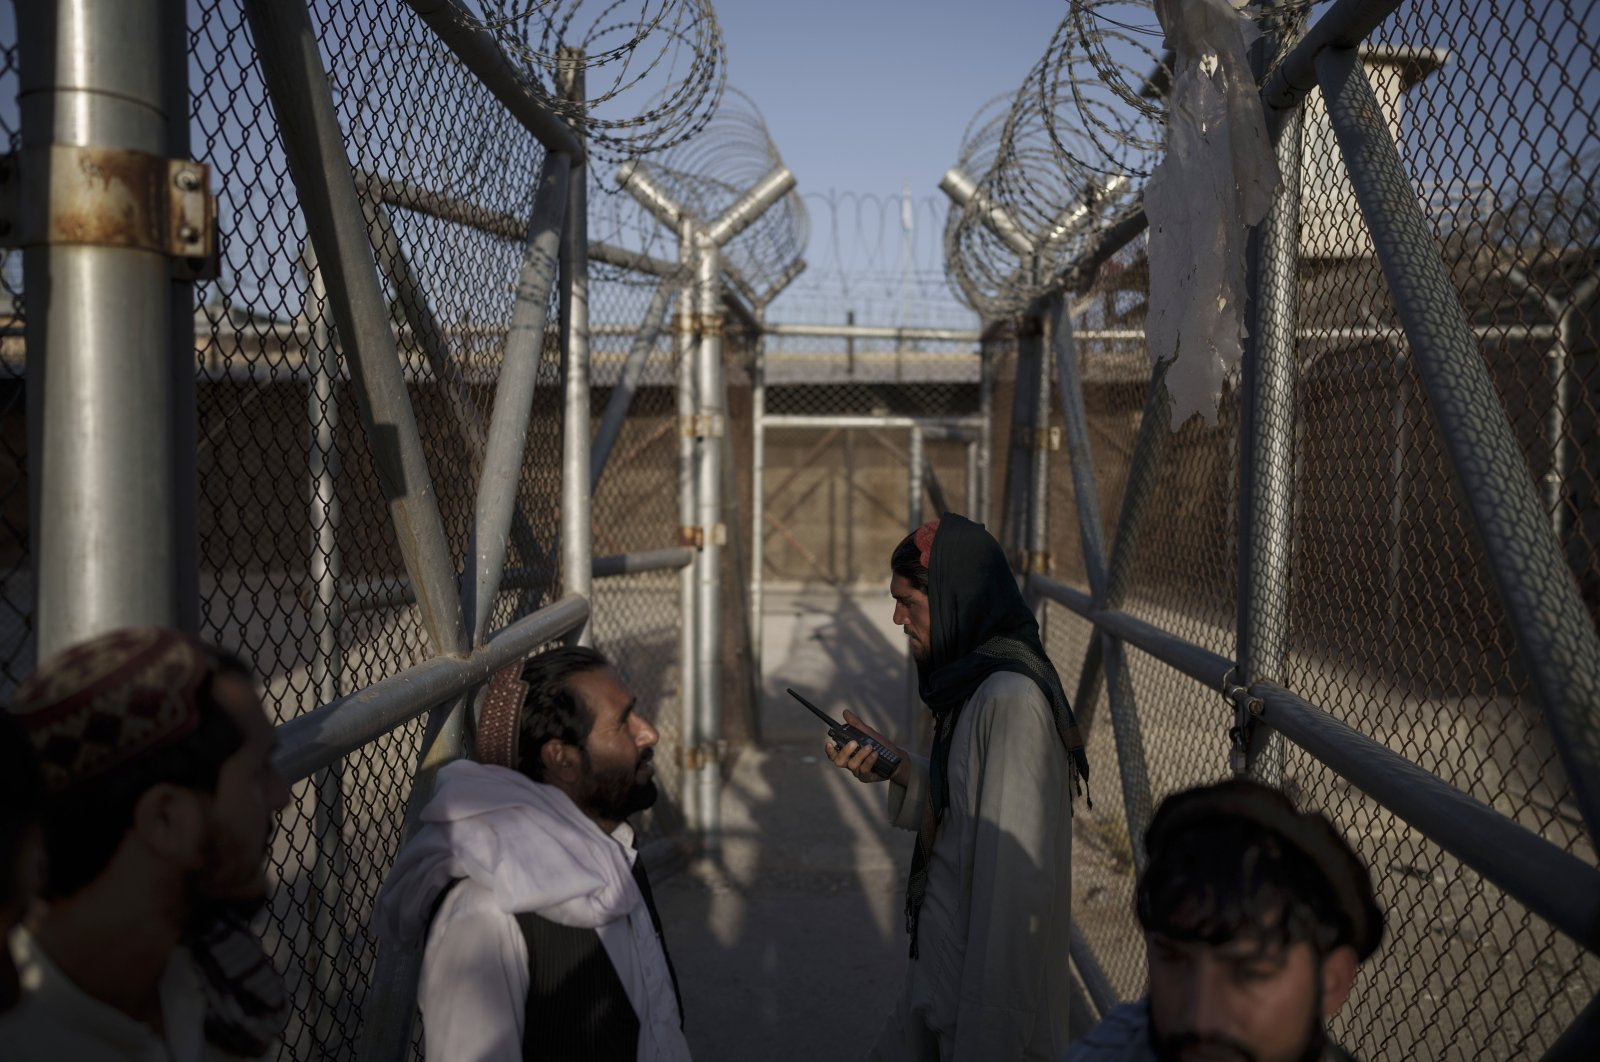 Taliban fighters enter an area where they are holding inmates who have been recently arrested at the Pul-e-Charkhi prison in Kabul, Afghanistan, Sept. 13, 2021. (AP Photo)